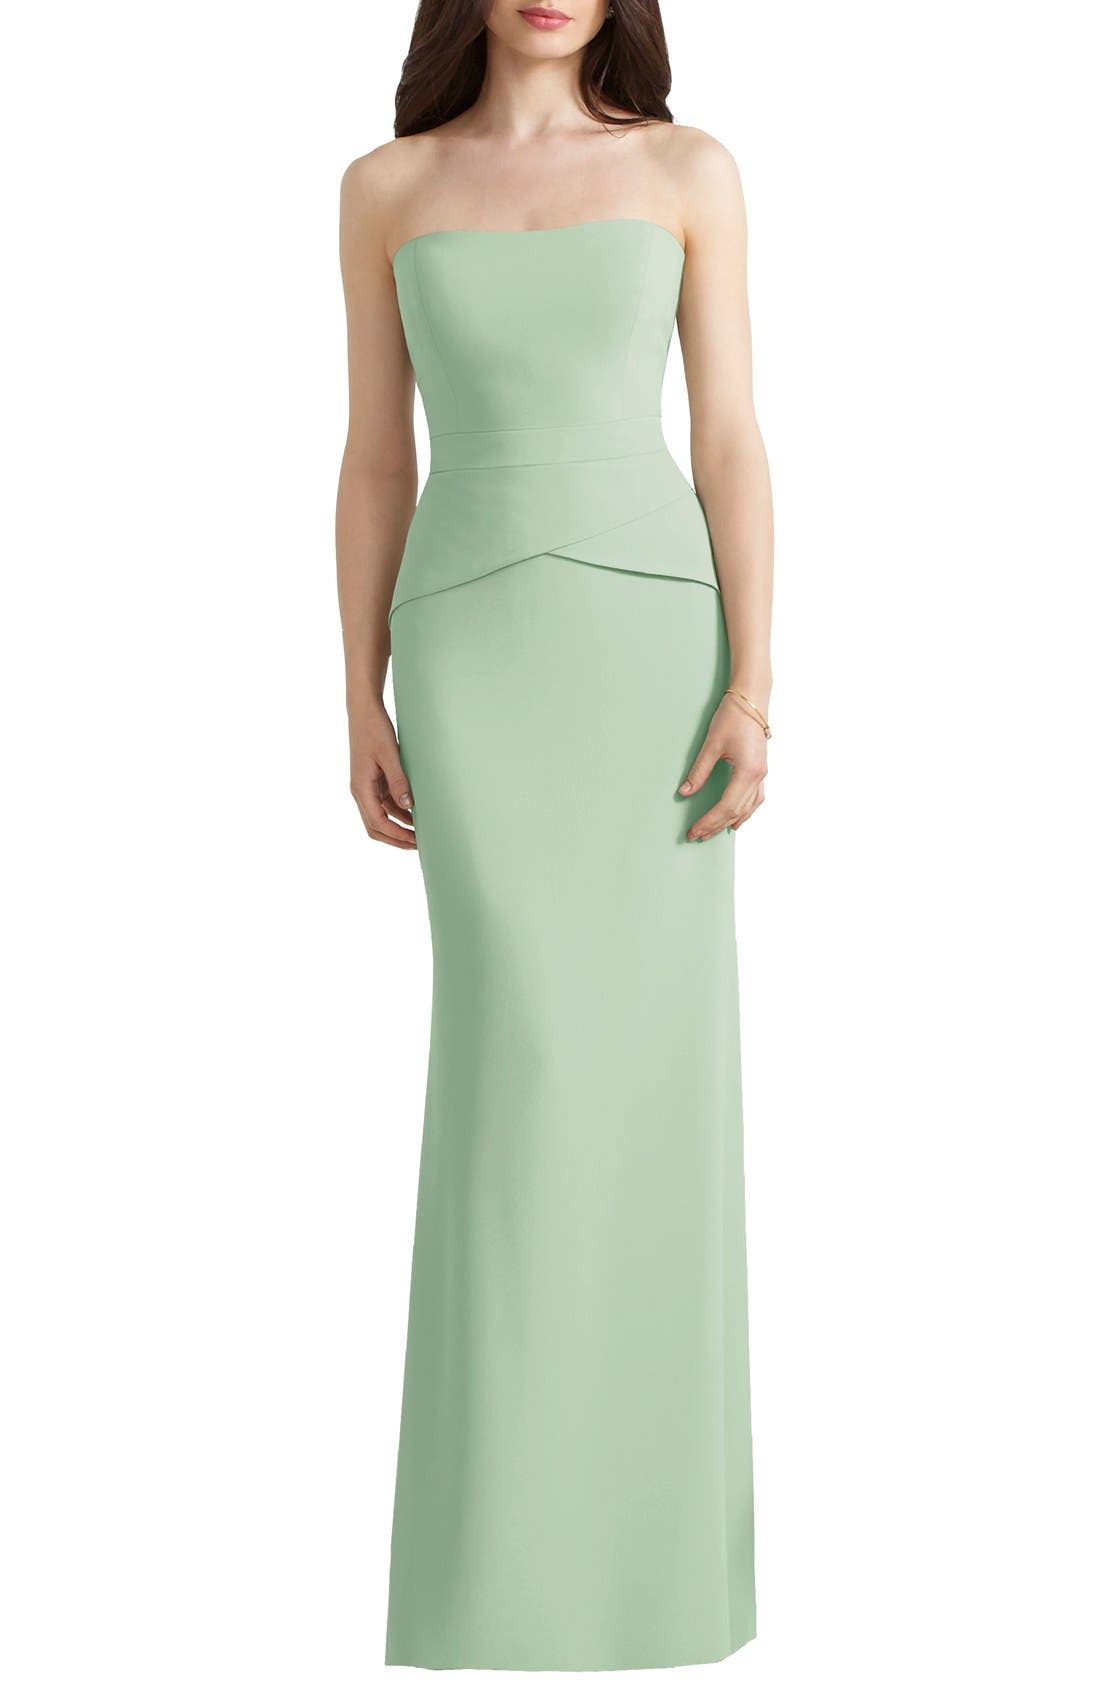 Alternate Image 1 Selected - Social Bridesmaids Strapless Peplum Detail Georgette Gown